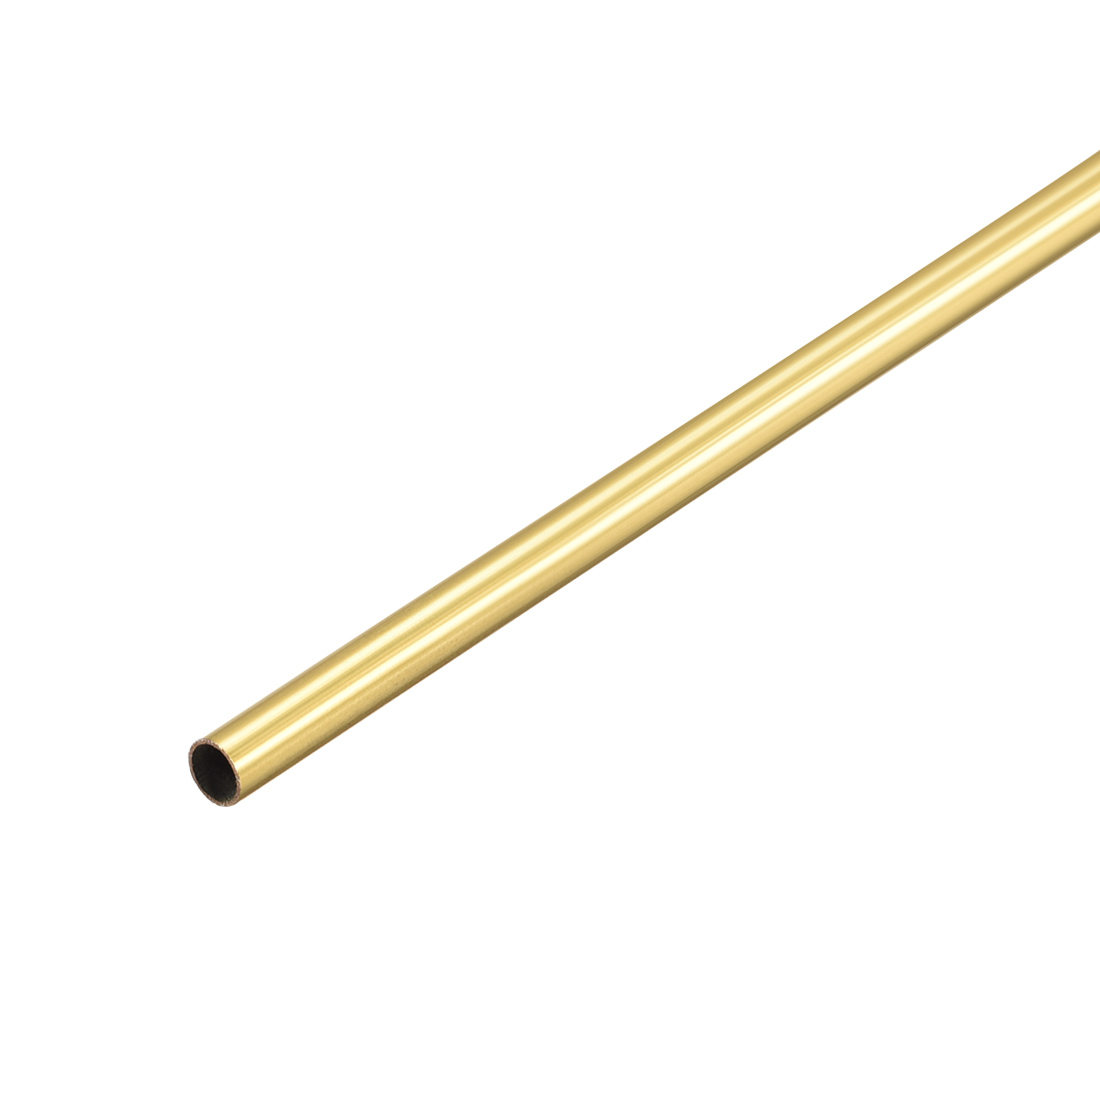 Uxcell Brass Round Tube 300mm Length 2.5mm OD 0.2mm Wall Thickness Seamless Straight Pipe Tubing